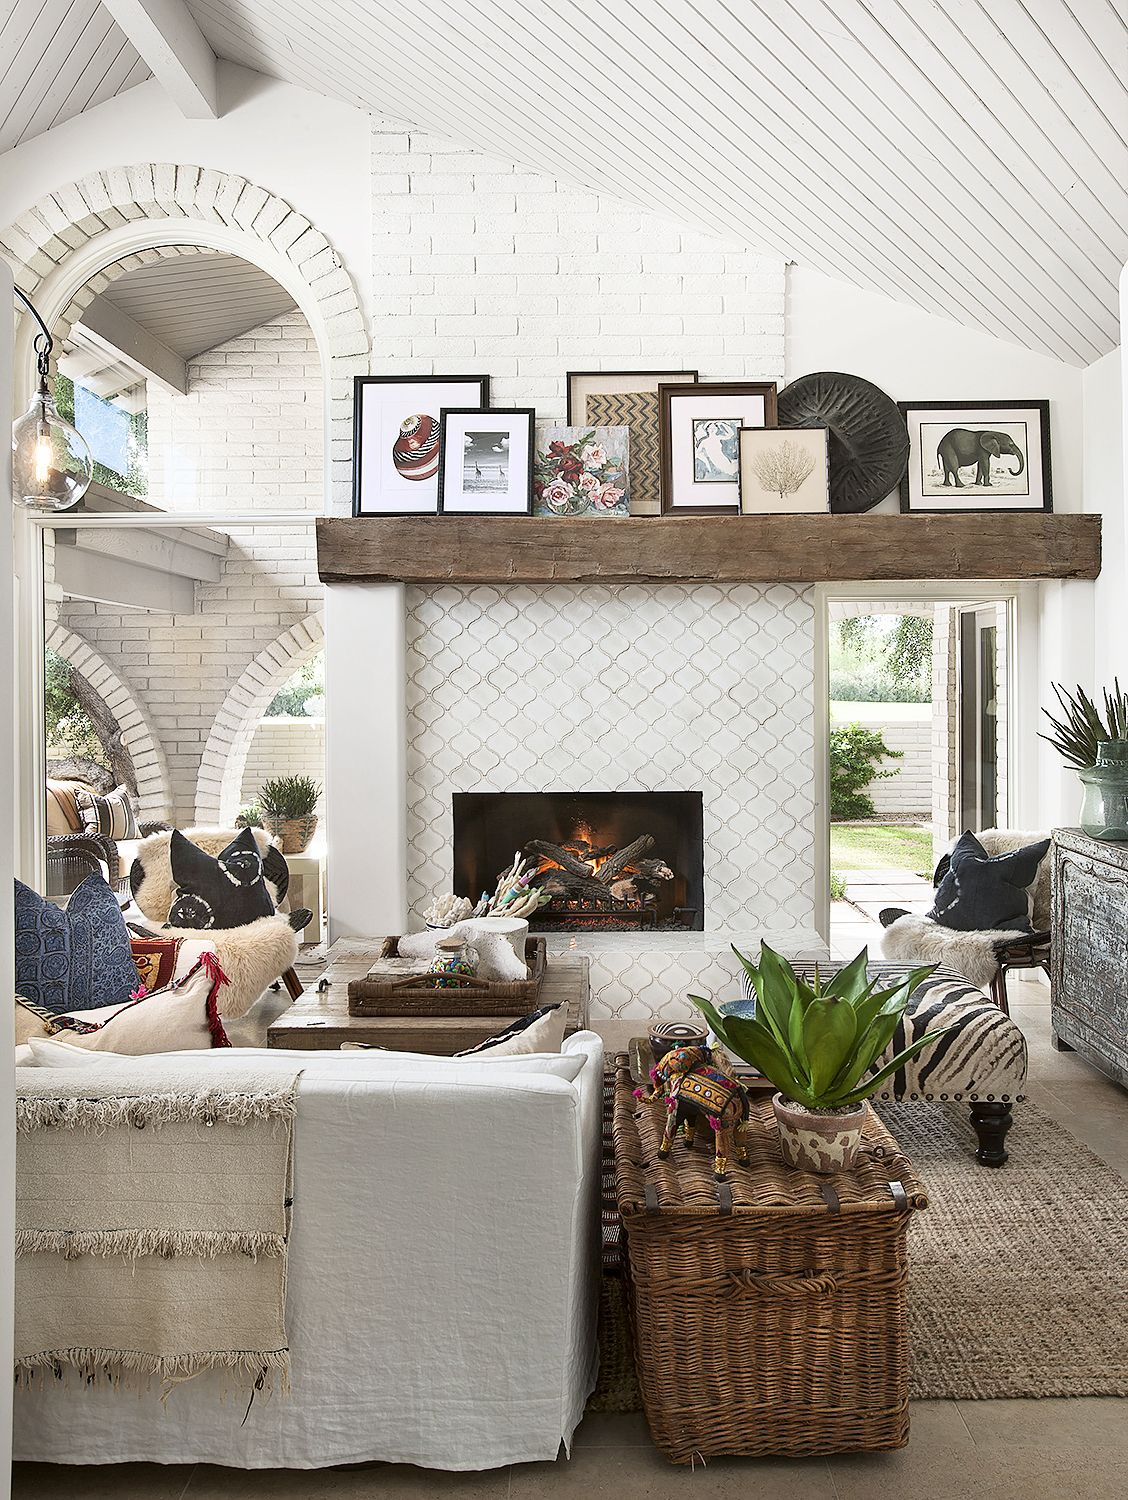 50 of the Most Beautiful Country Homes Across America | Tiled ...